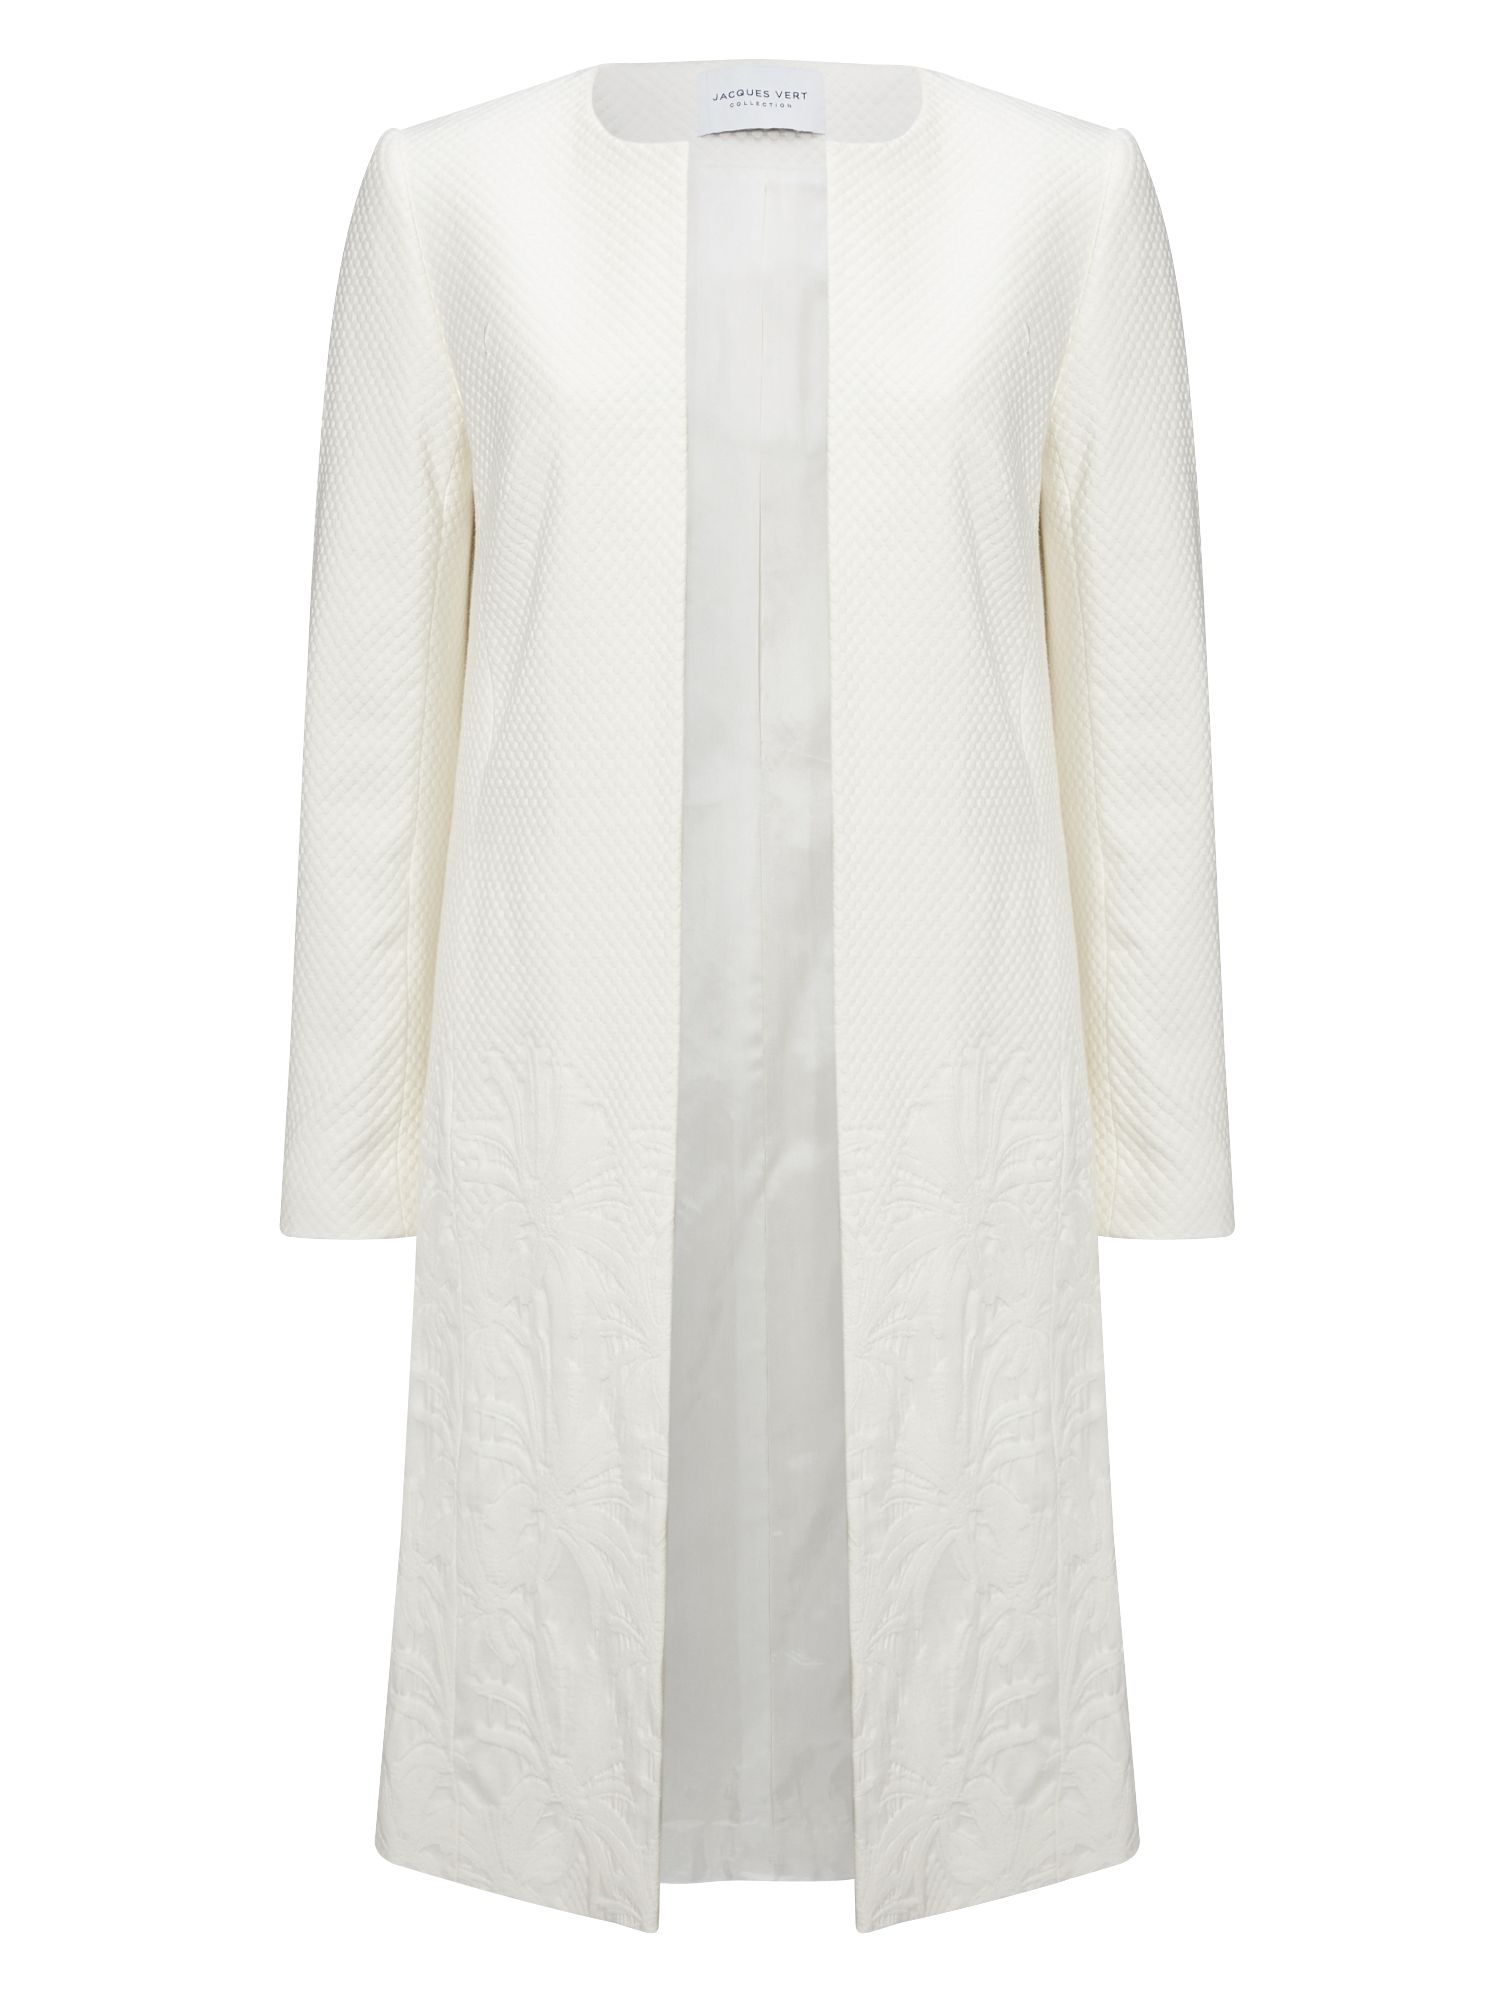 Jacques Vert Gradual Textured Jacket, Neutral